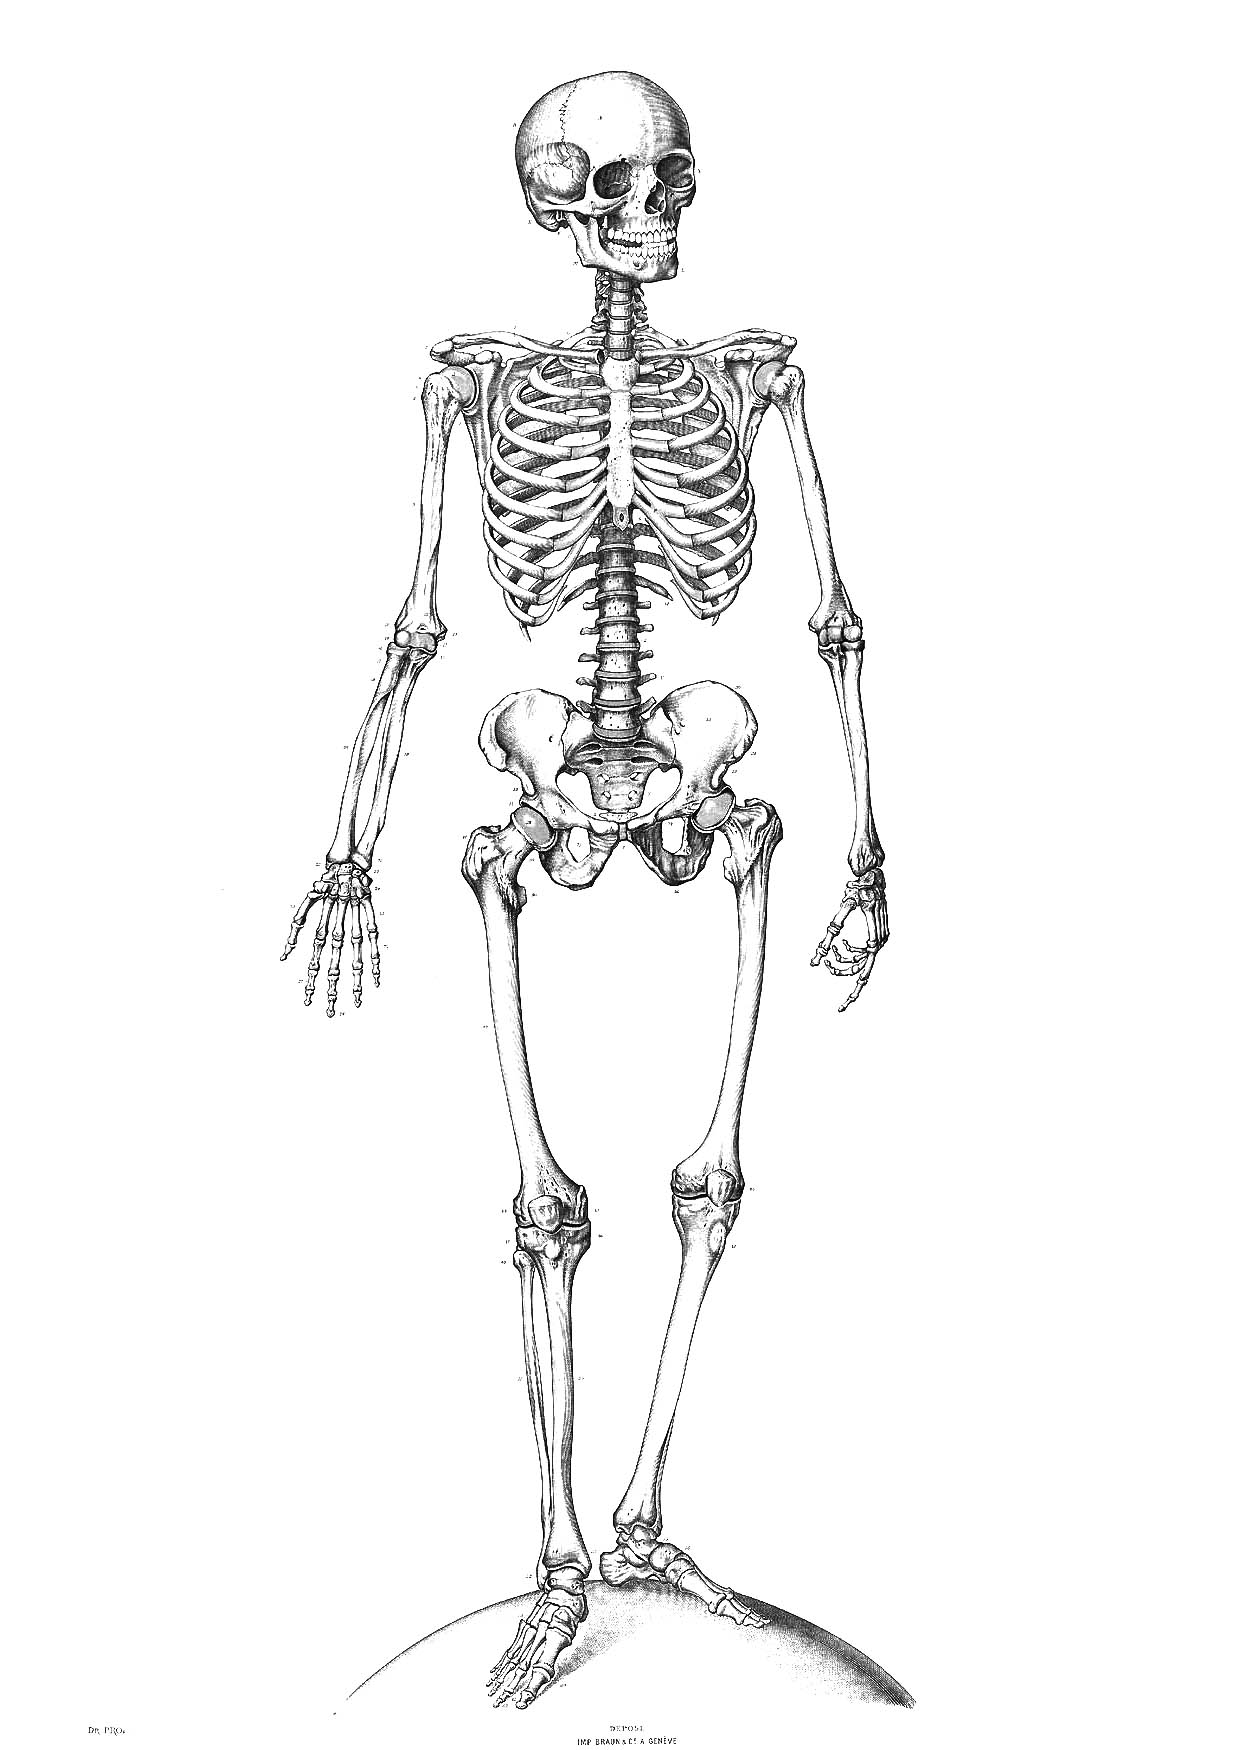 coloring skeleton pictures coloring pages skeleton coloring skeleton pictures